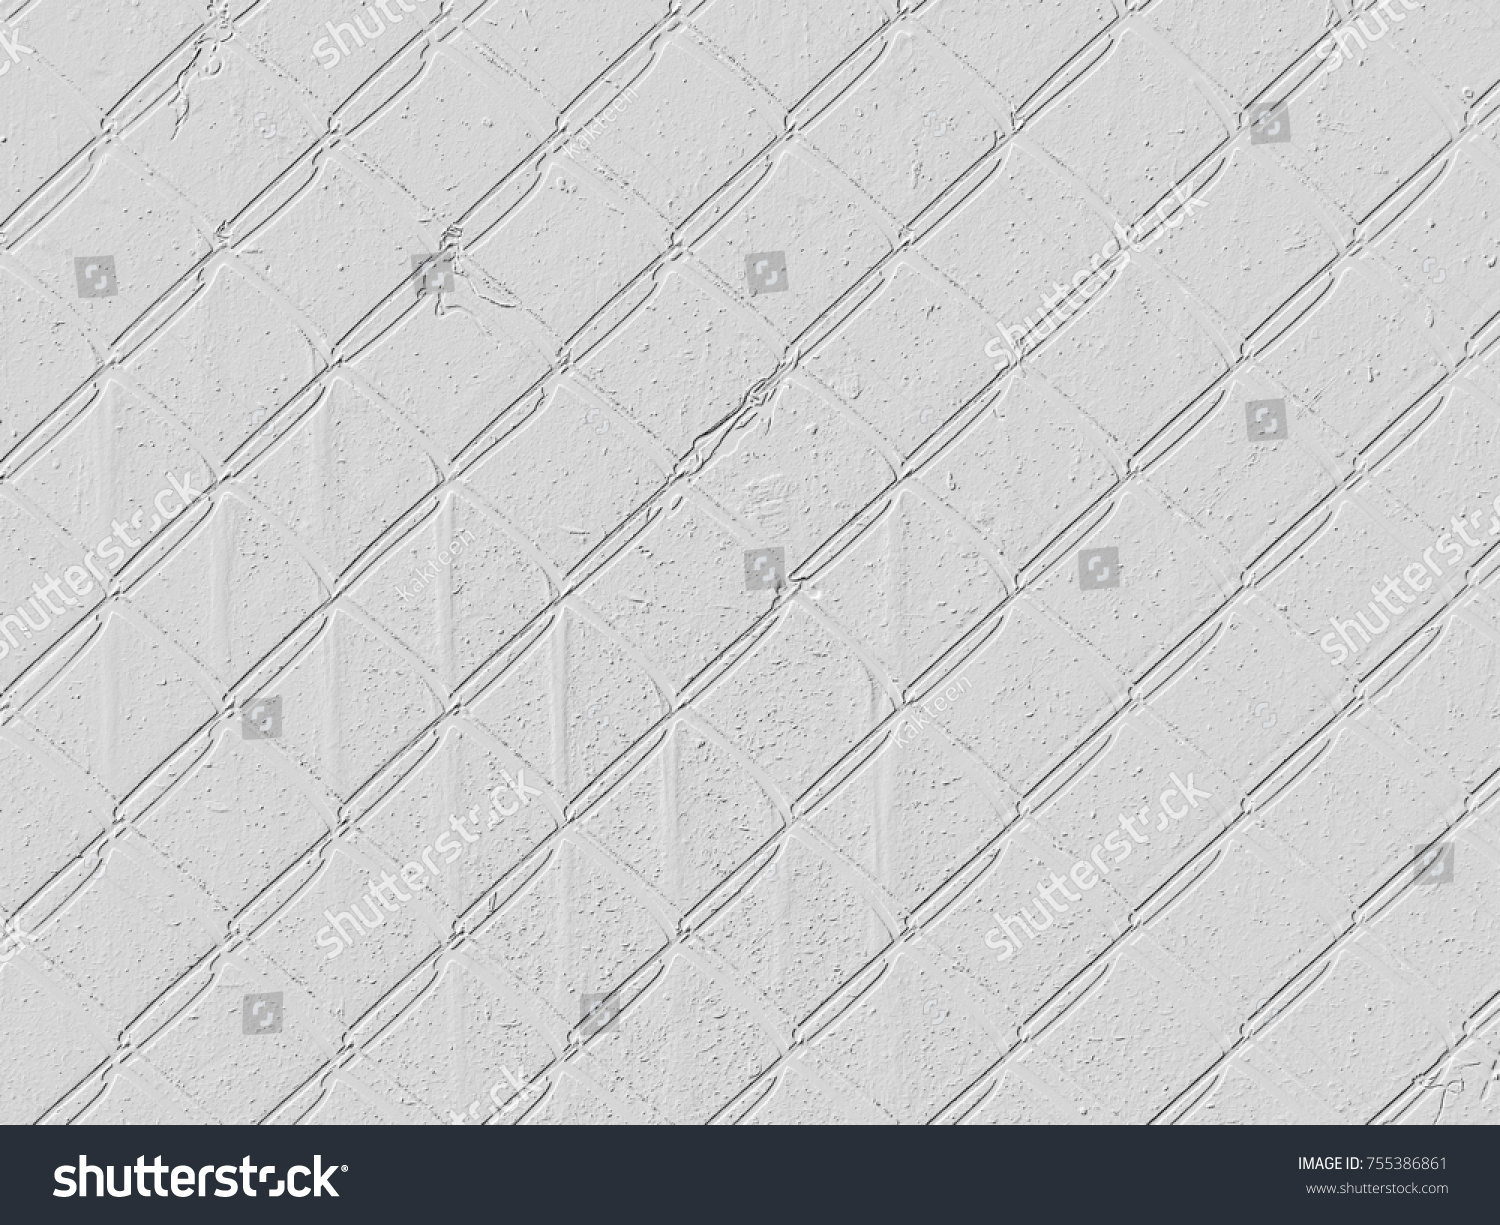 Great Wire Fence Texture Ideas - Electrical System Block Diagram ...